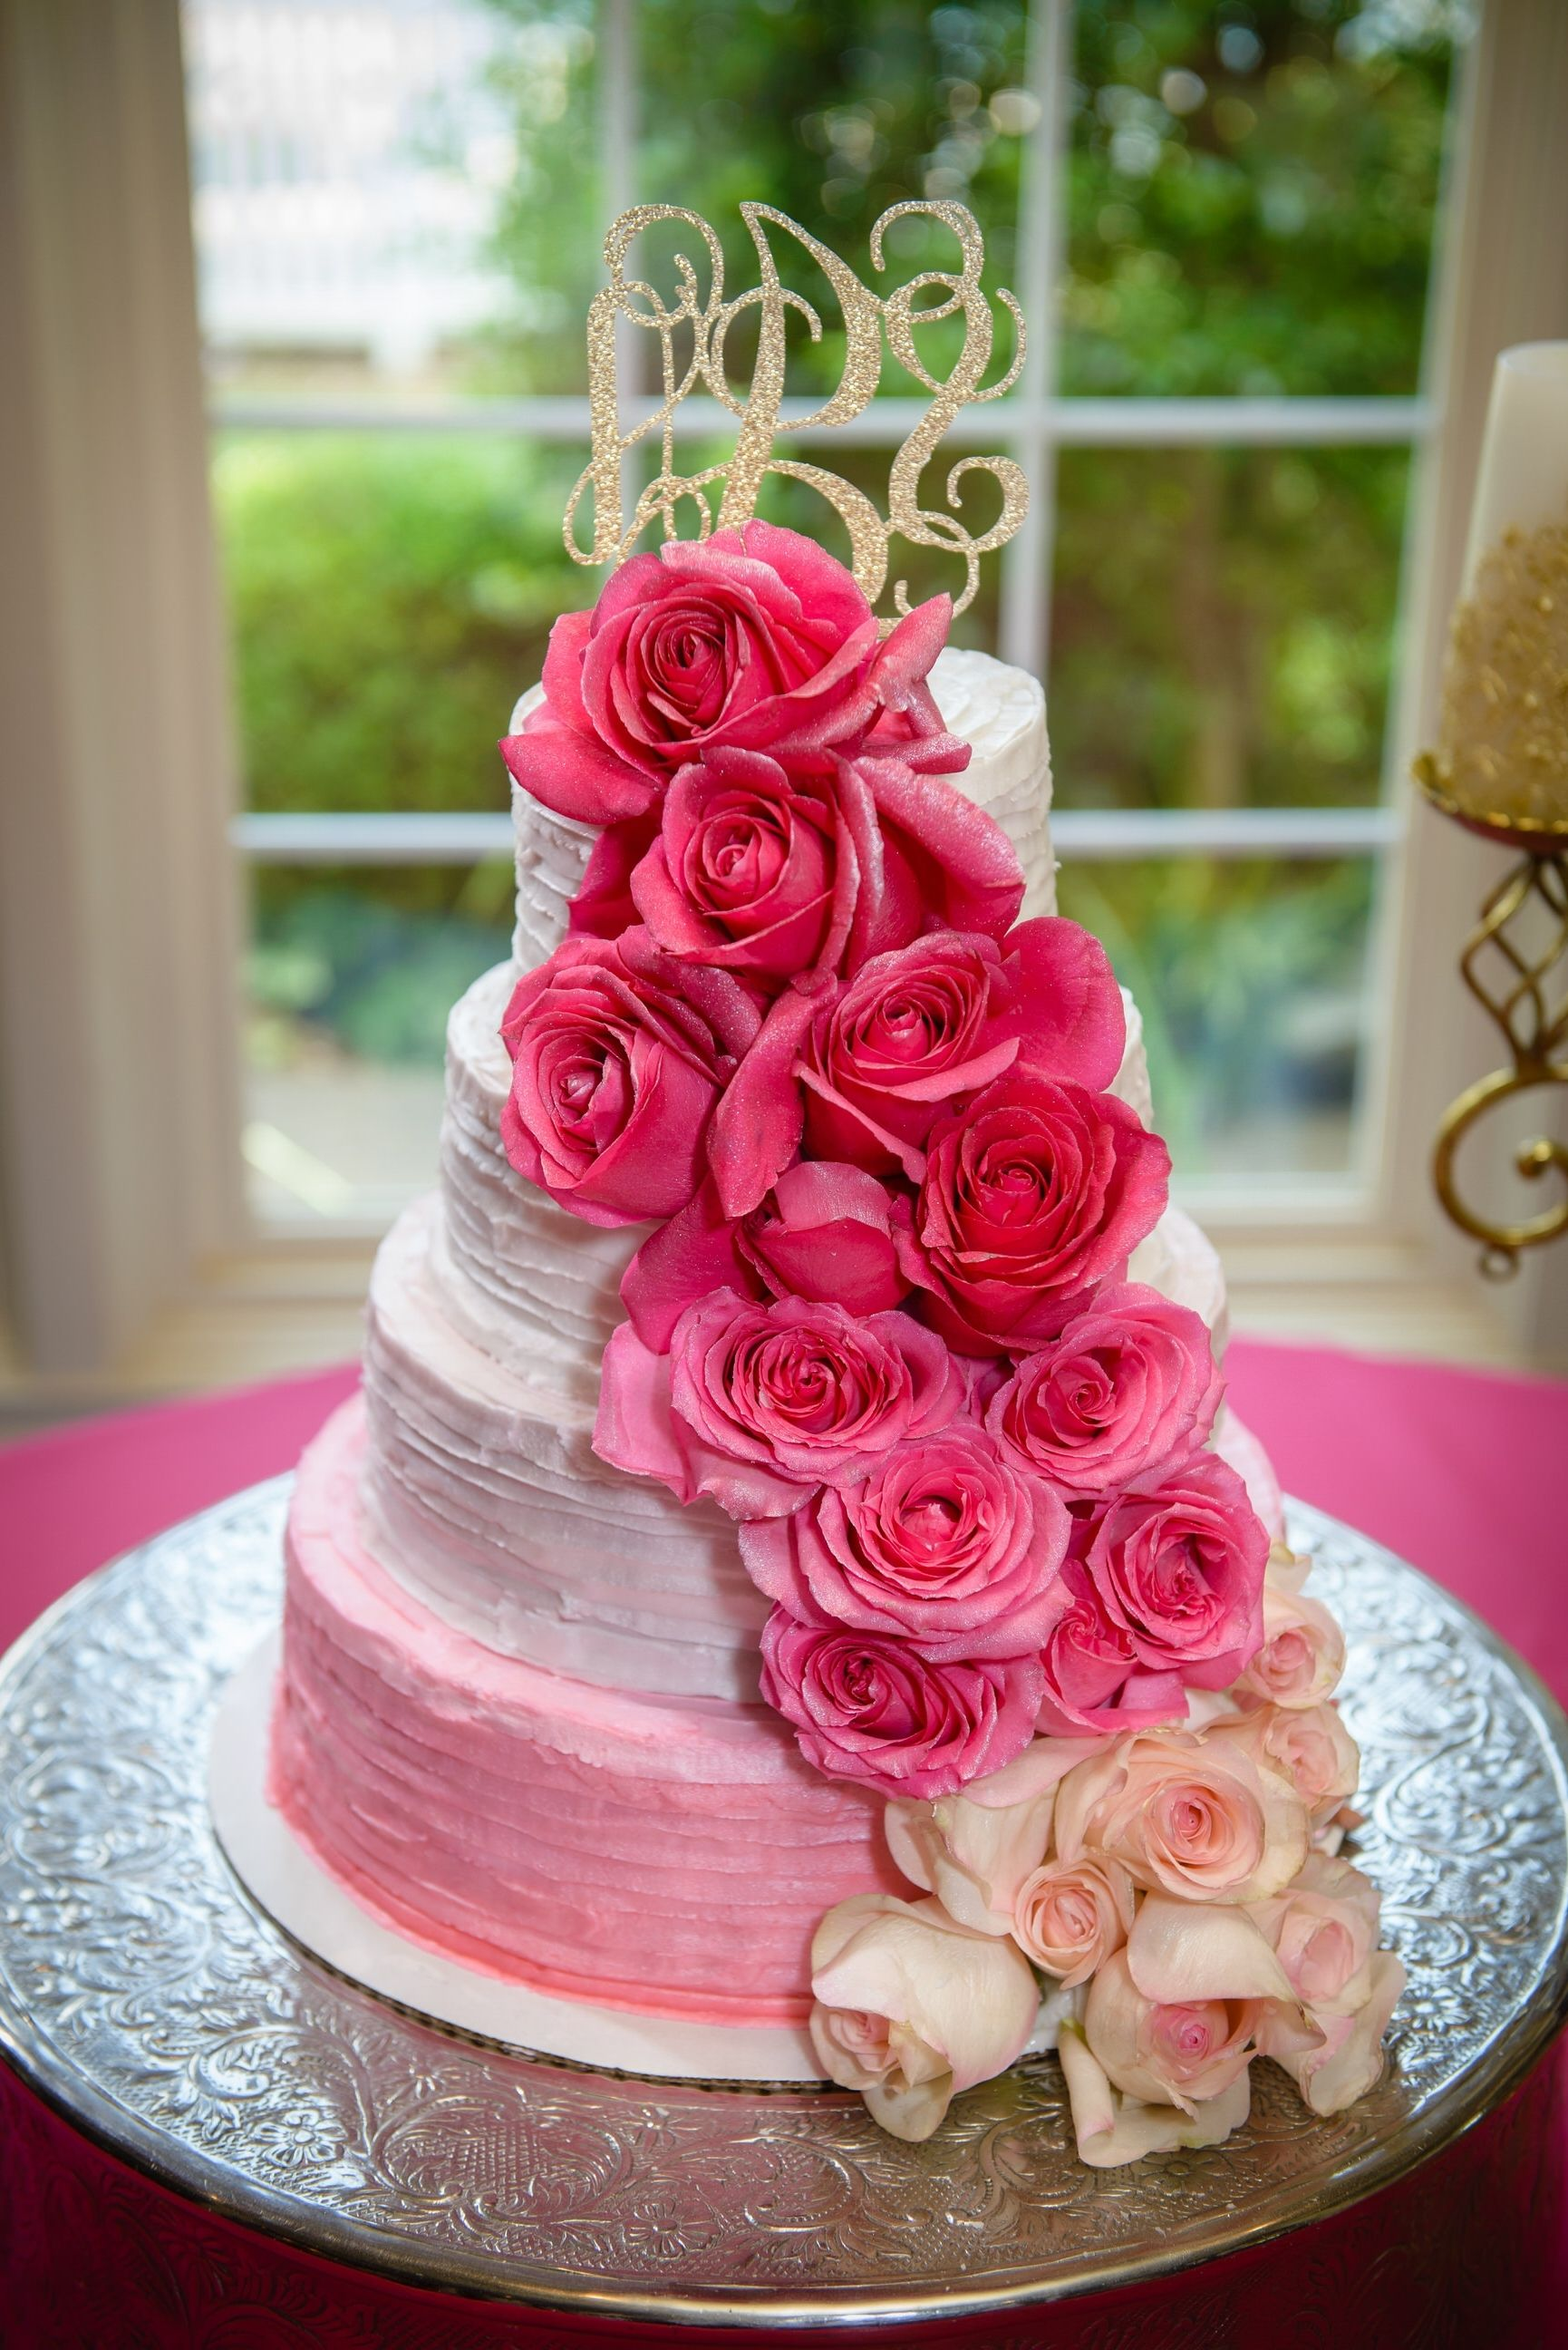 Wedding Cakes Decatur Alabama | Wedding Dress | Pinterest | Alabama ...